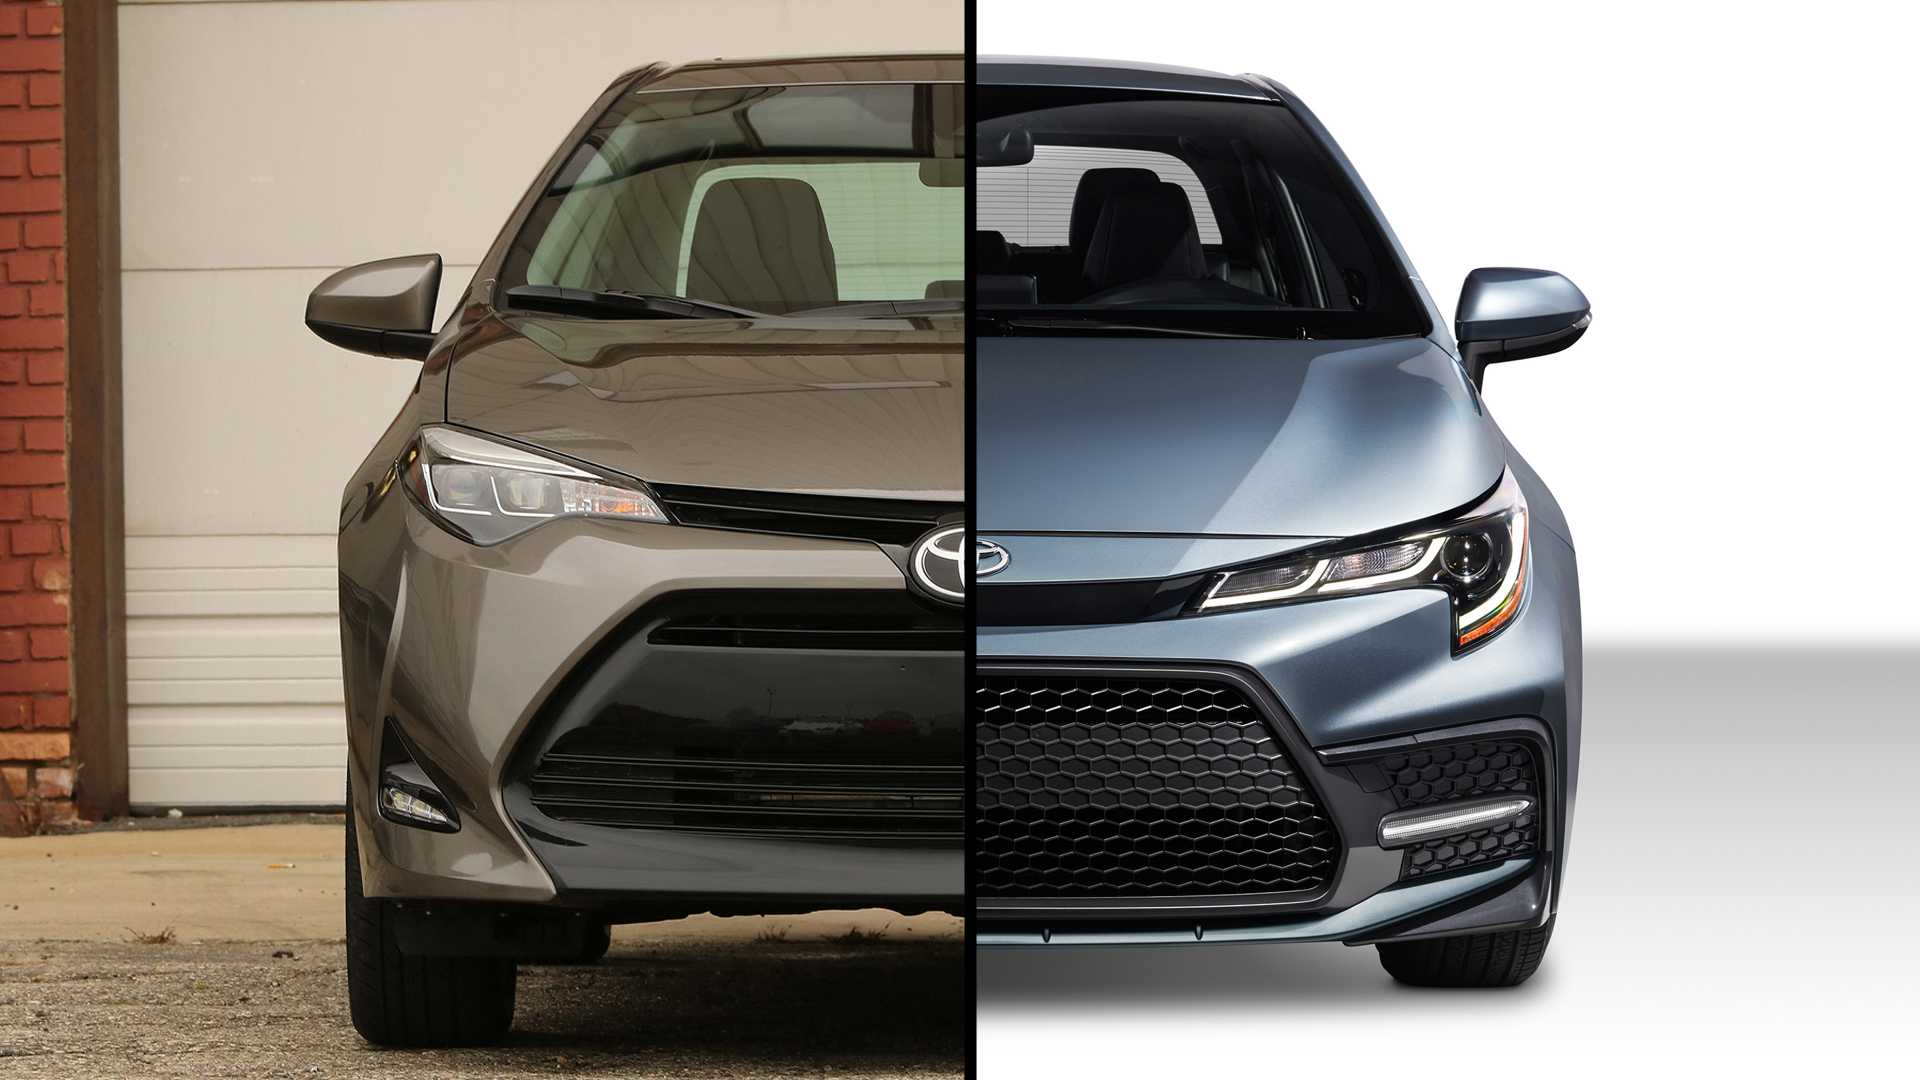 89 Gallery of Toyota Models 2020 Exterior and Interior with Toyota Models 2020